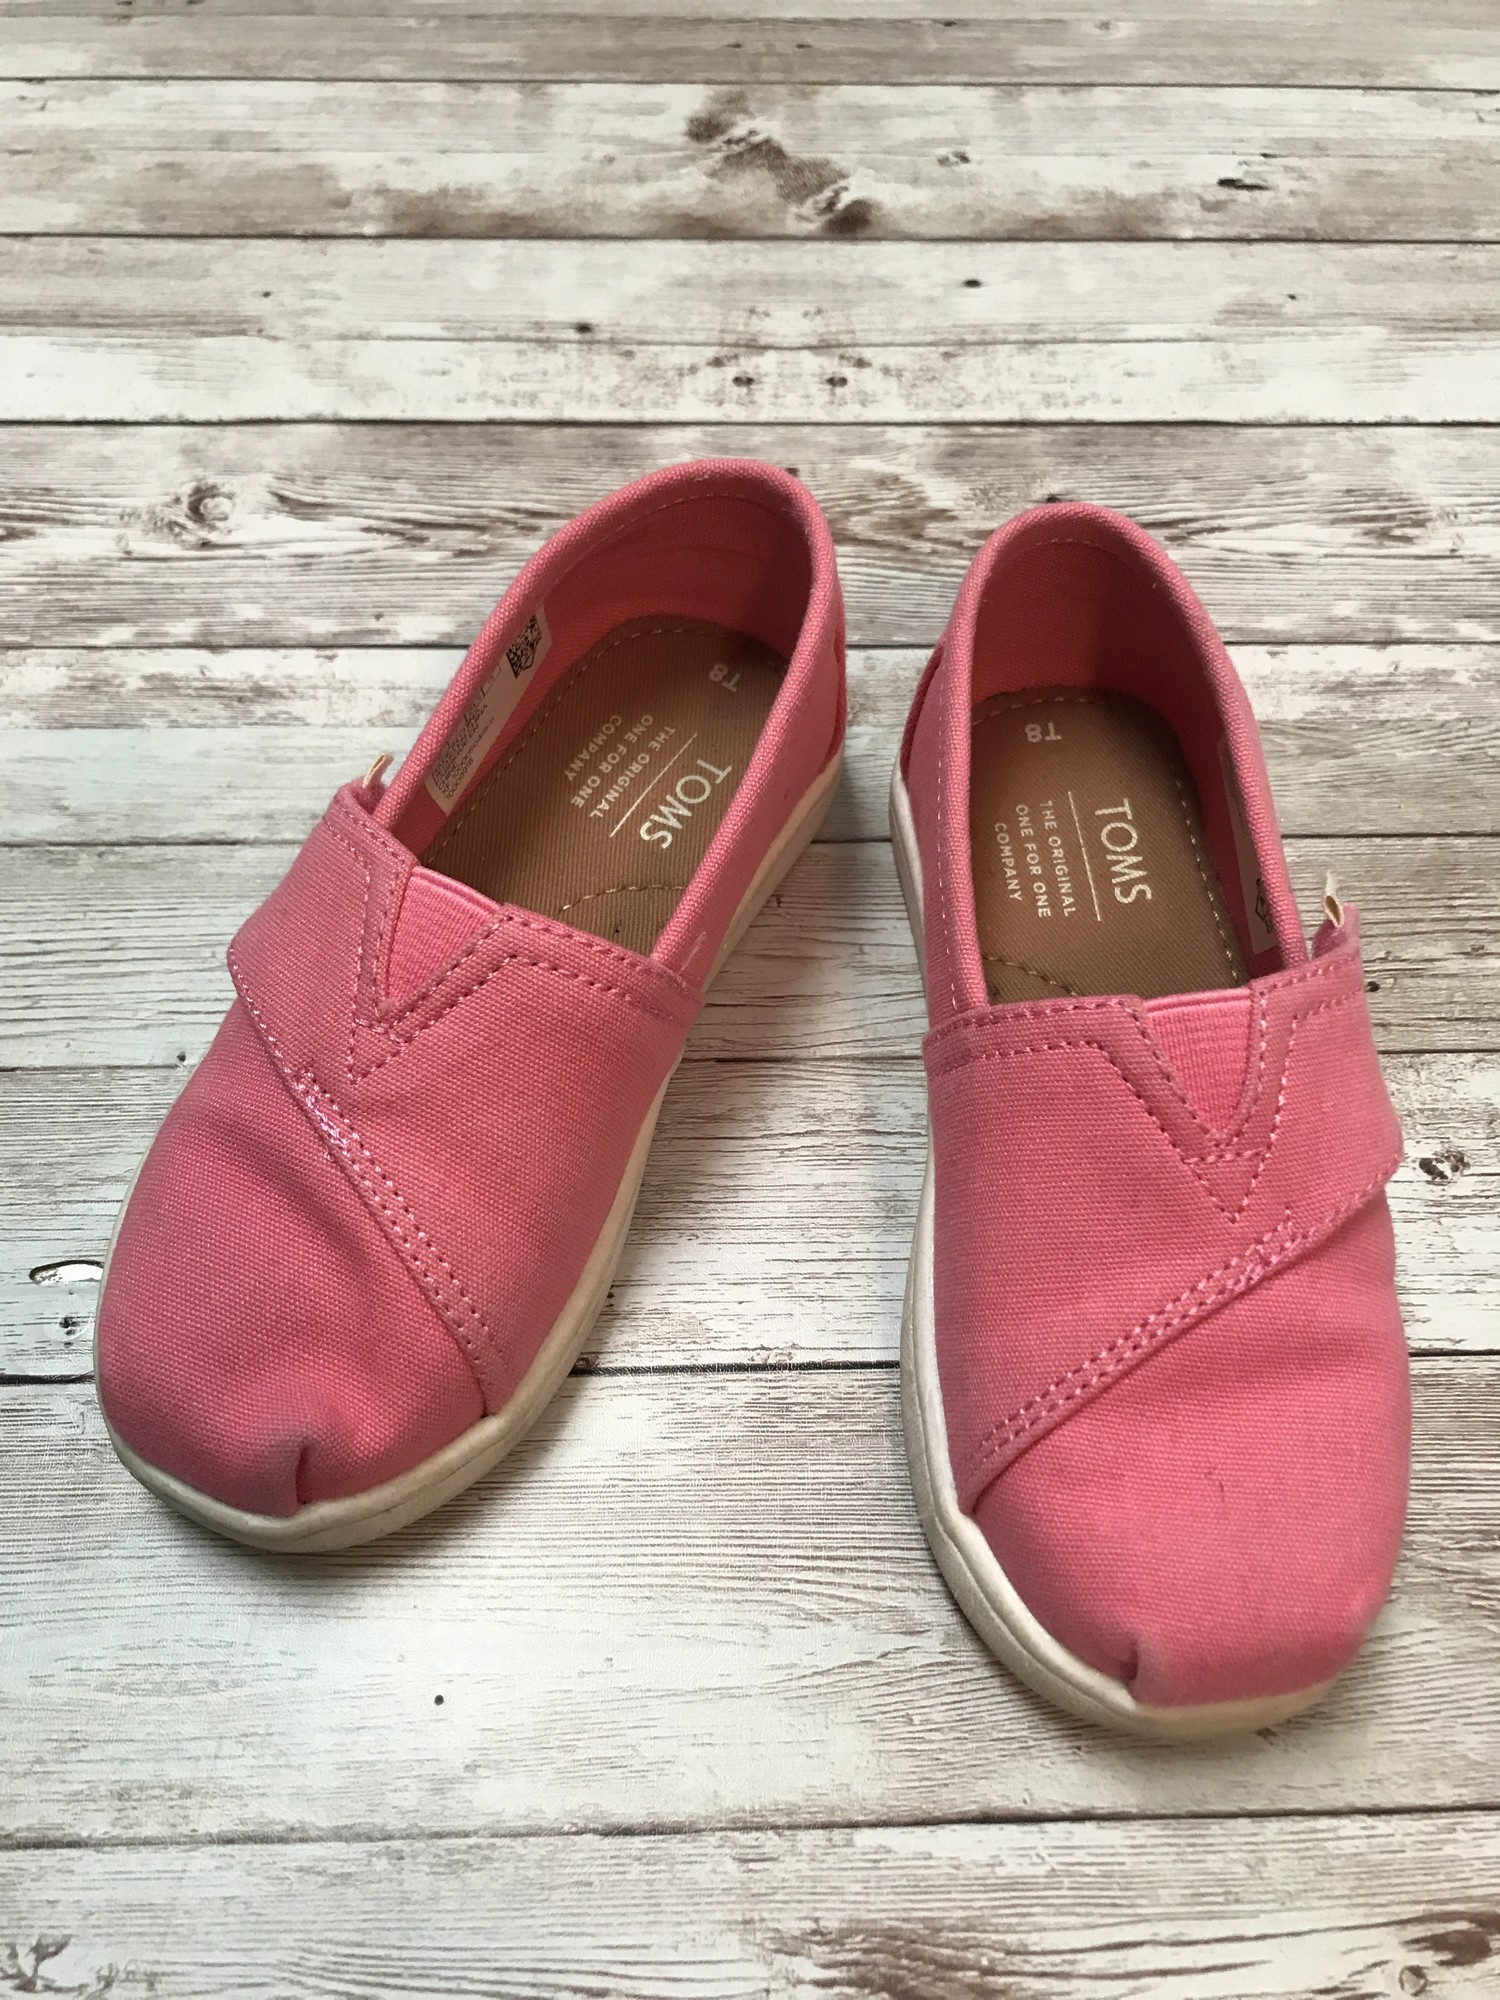 Toms Solid Color, Pink, Size: Shoes 8